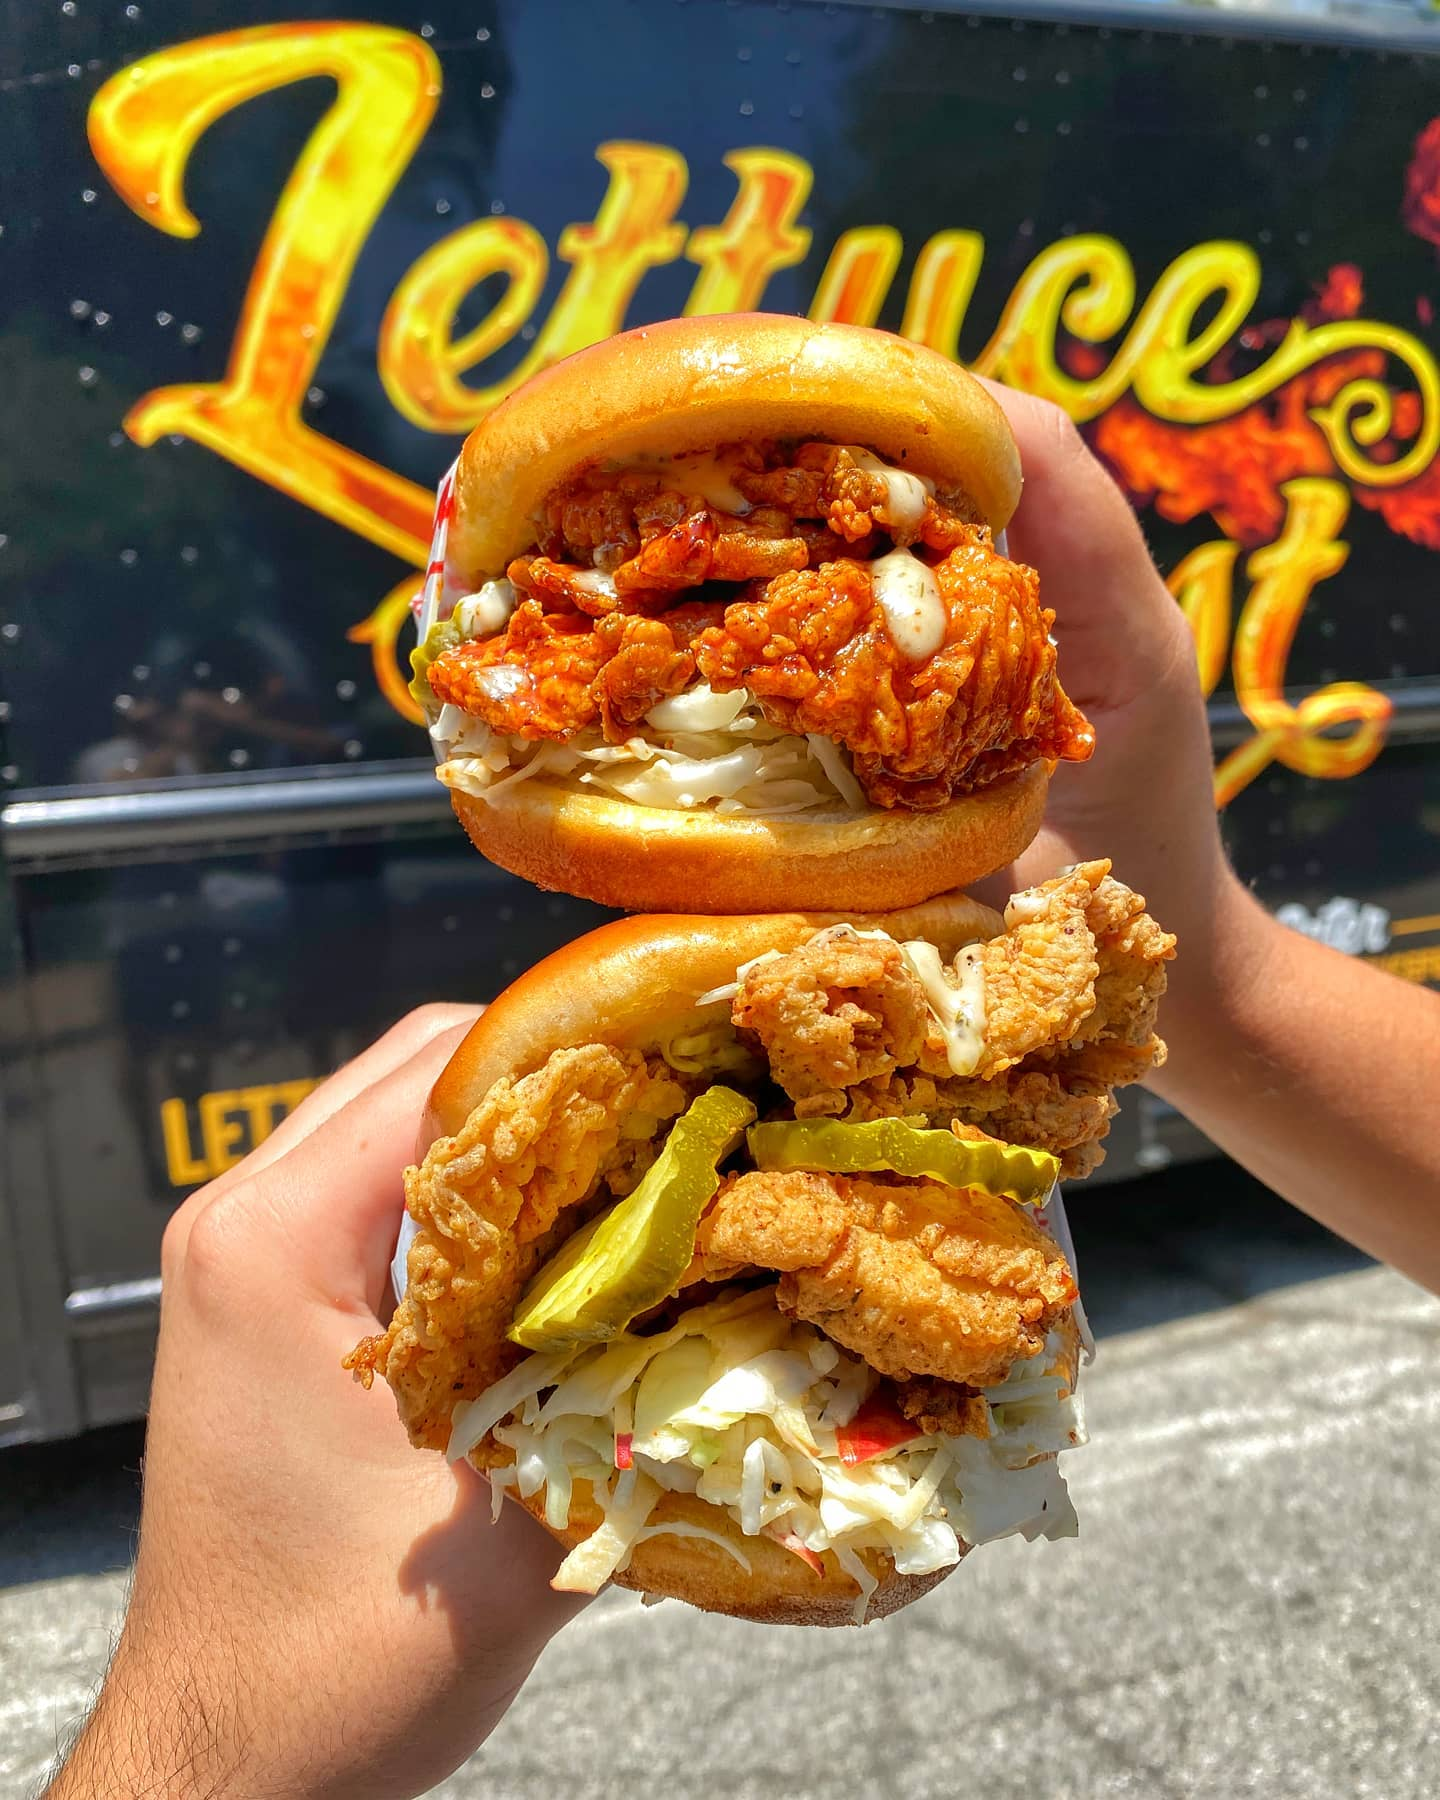 Vegan fried chicken sandwiches from Lettuce Feast